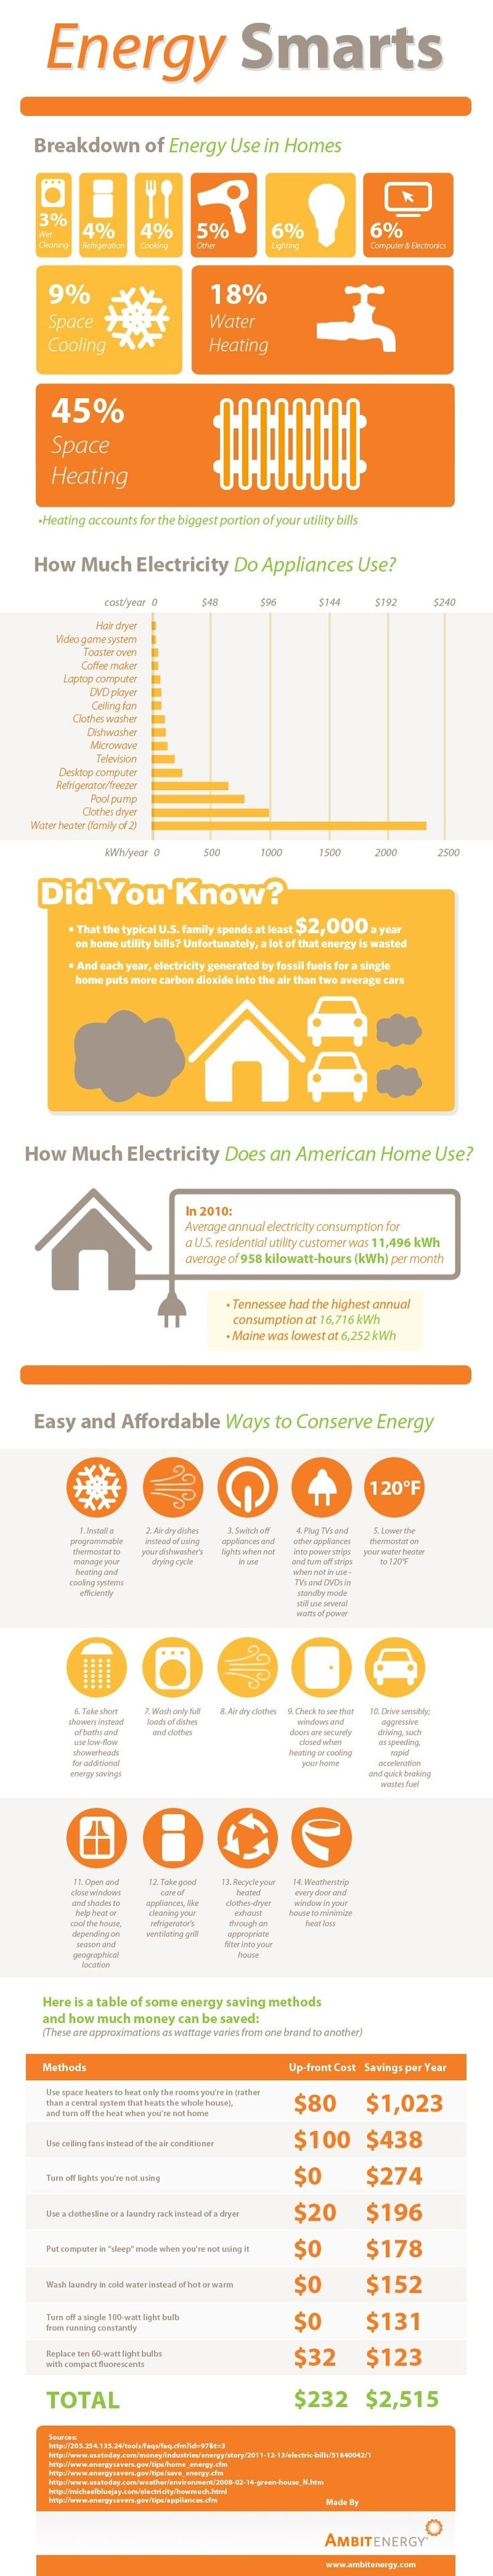 Energy efficient home upgrades in los angeles for 0 down home improvement hub